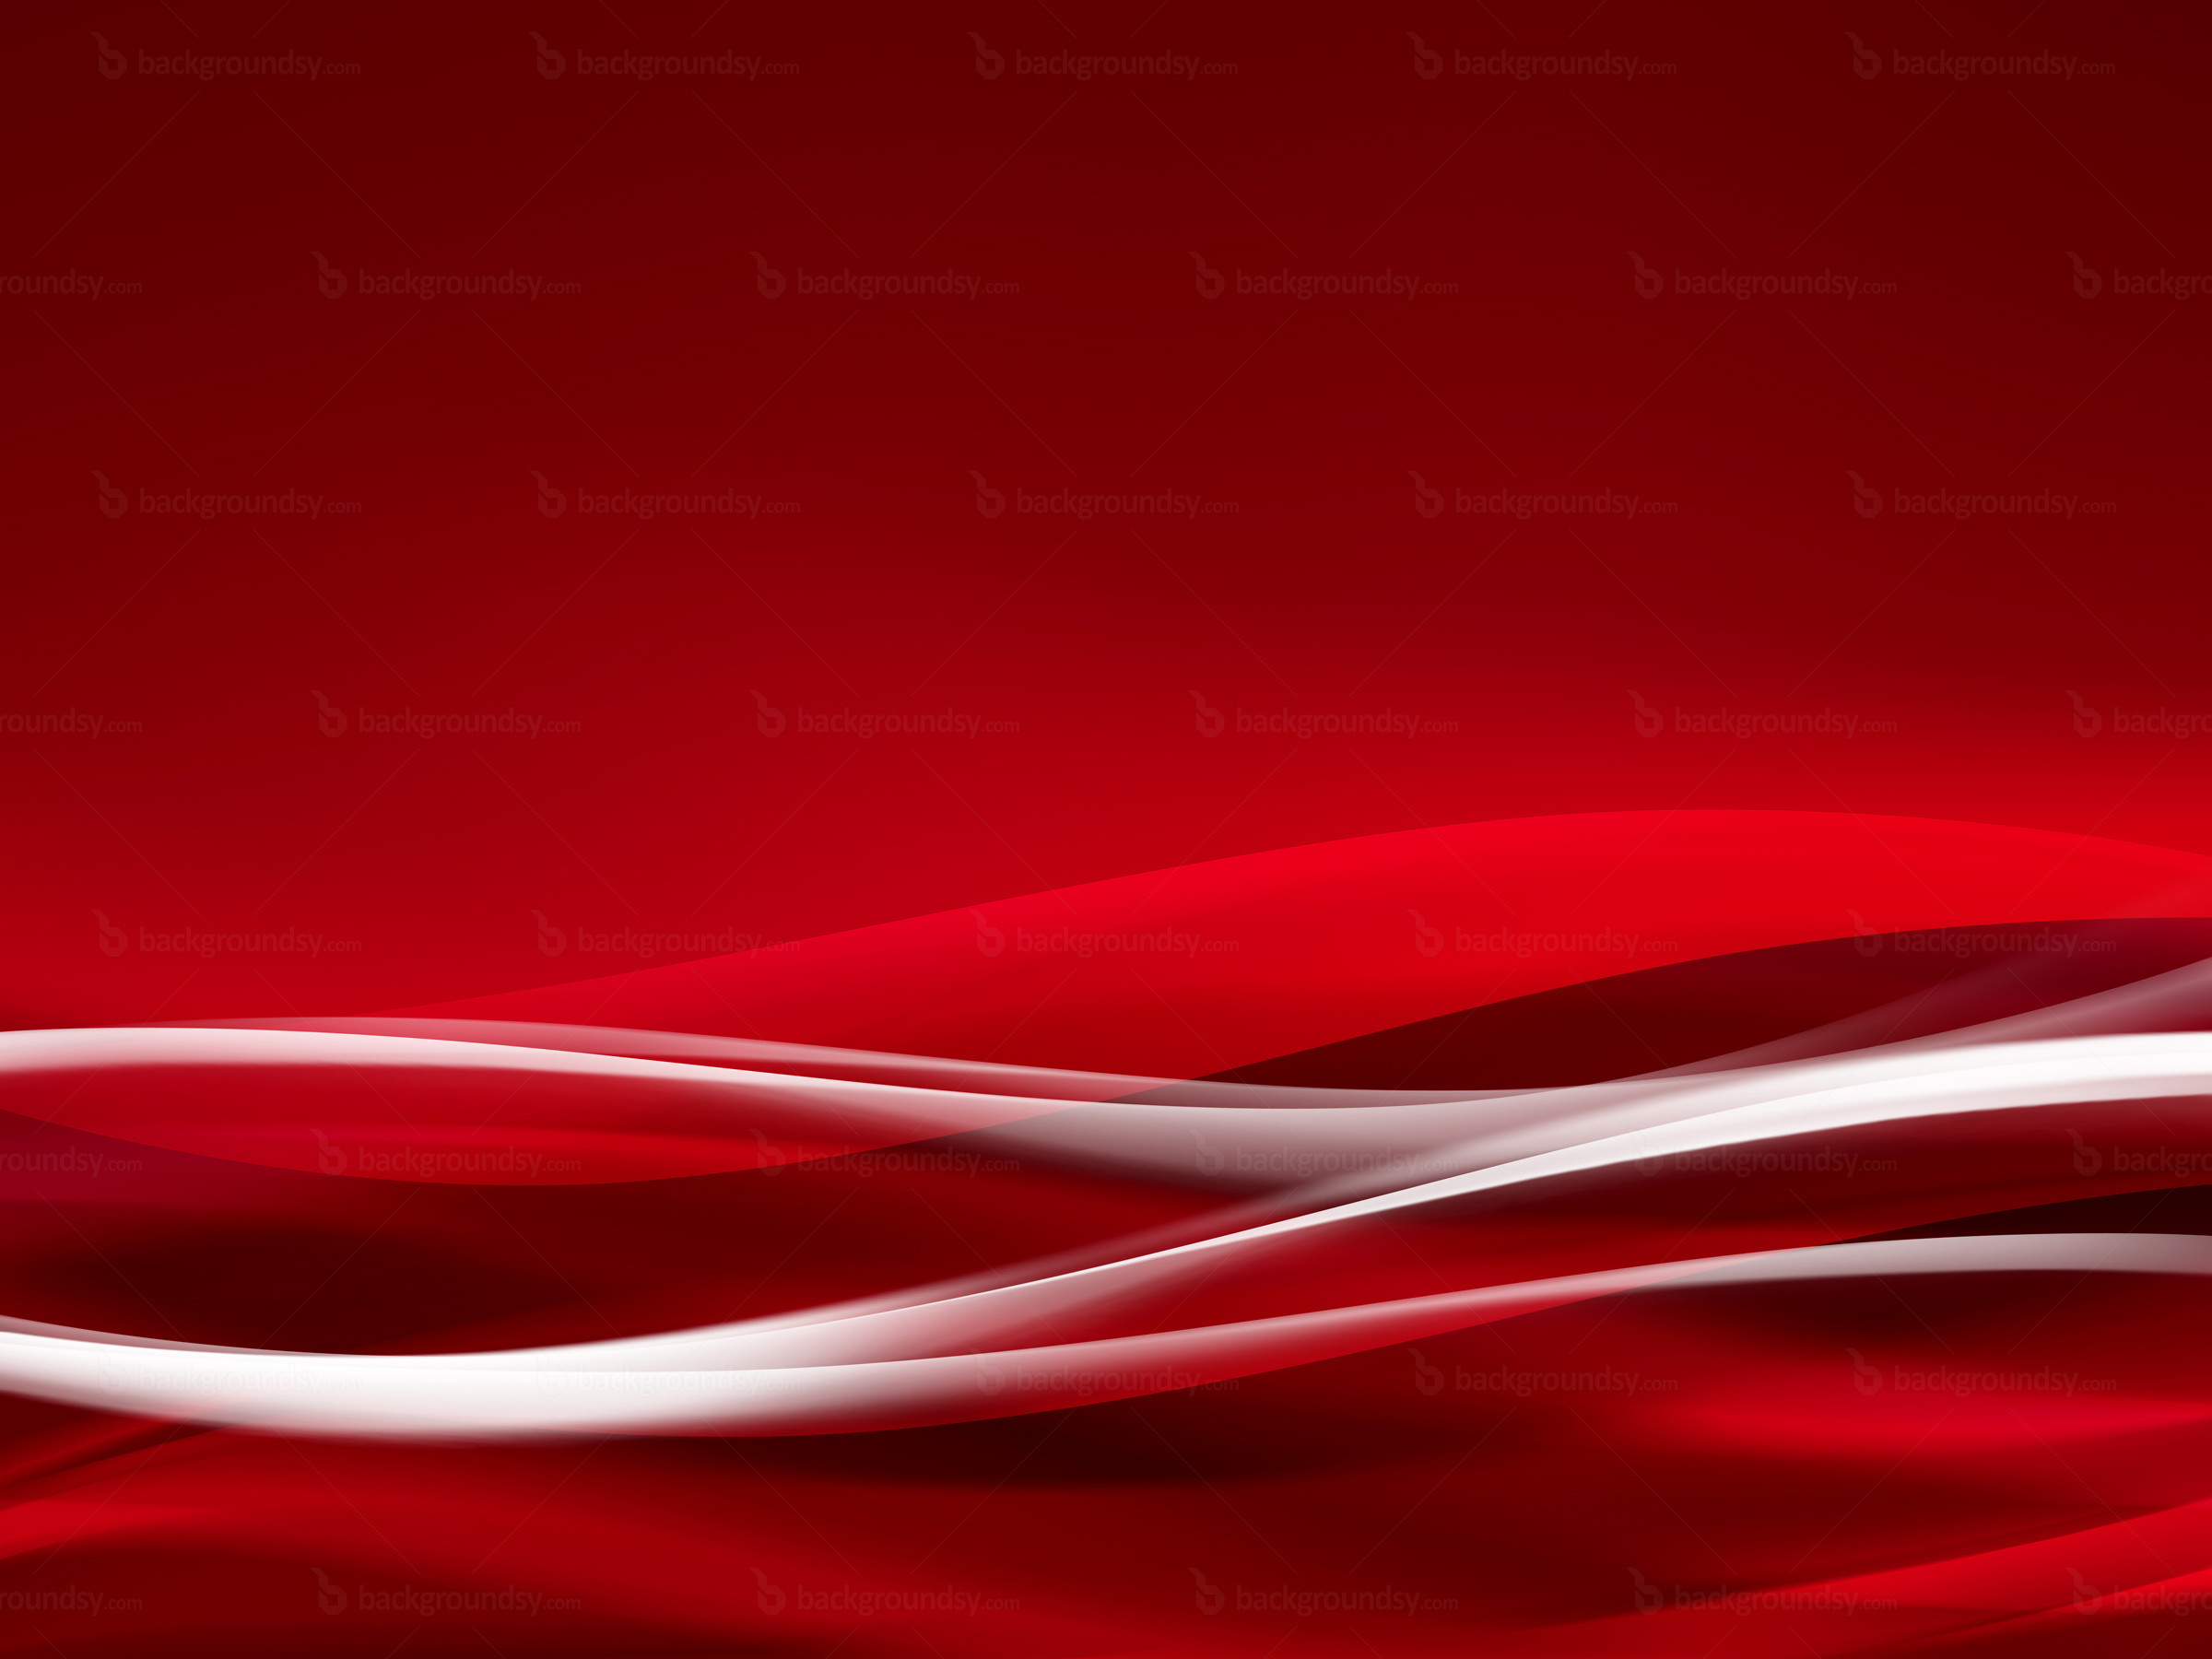 Red Waves Wallpaper Free Downloads